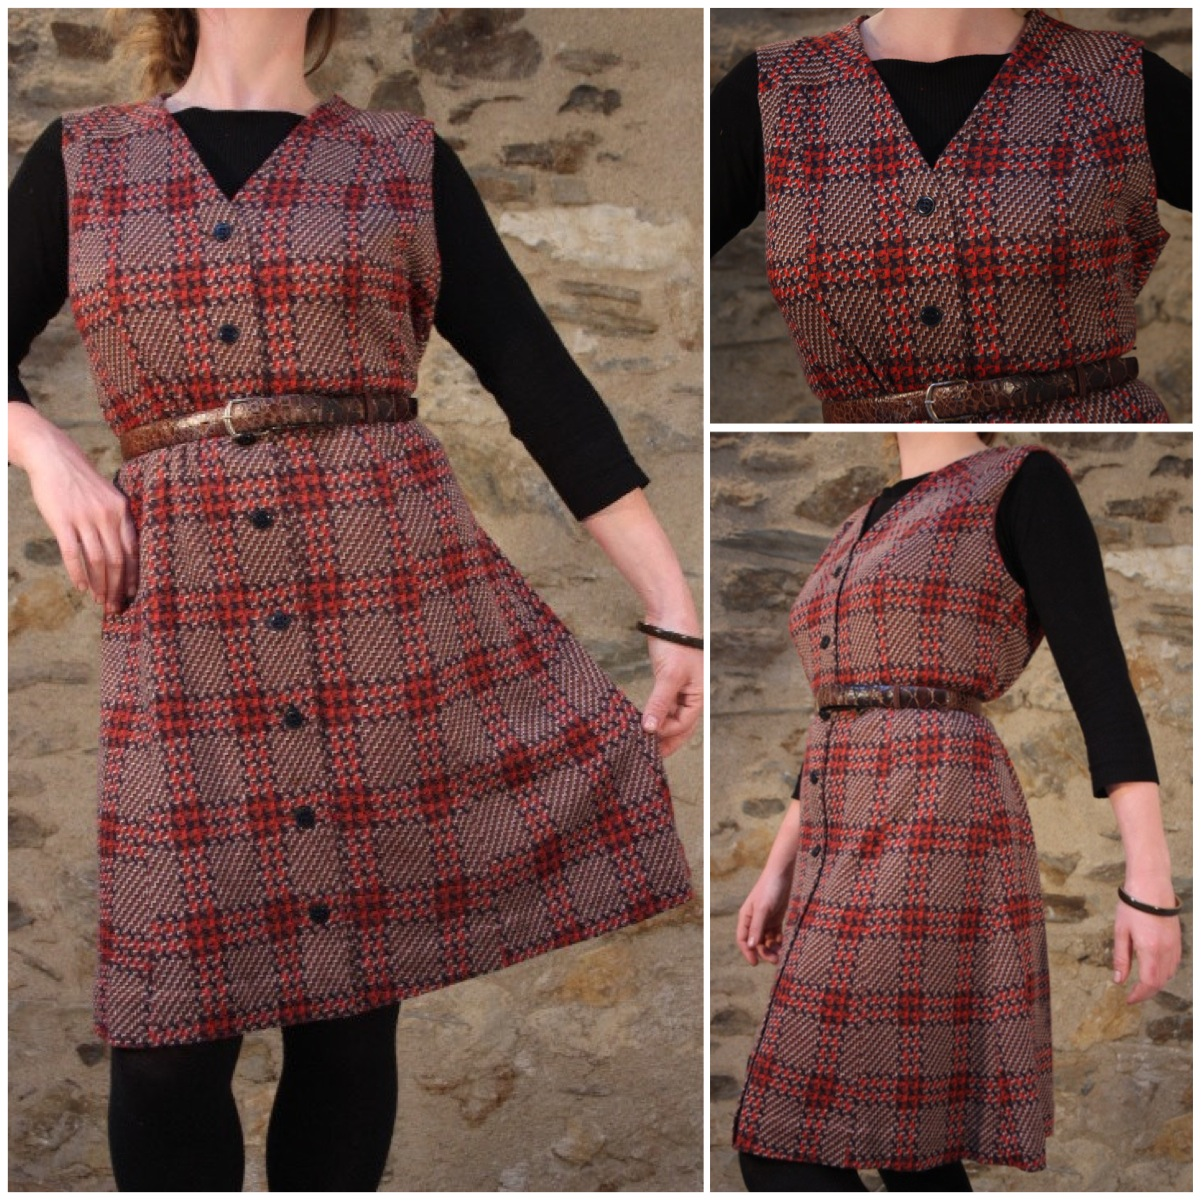 Friday's featured item – 1970's Tweed Autumn/Winter Dress Red Brown